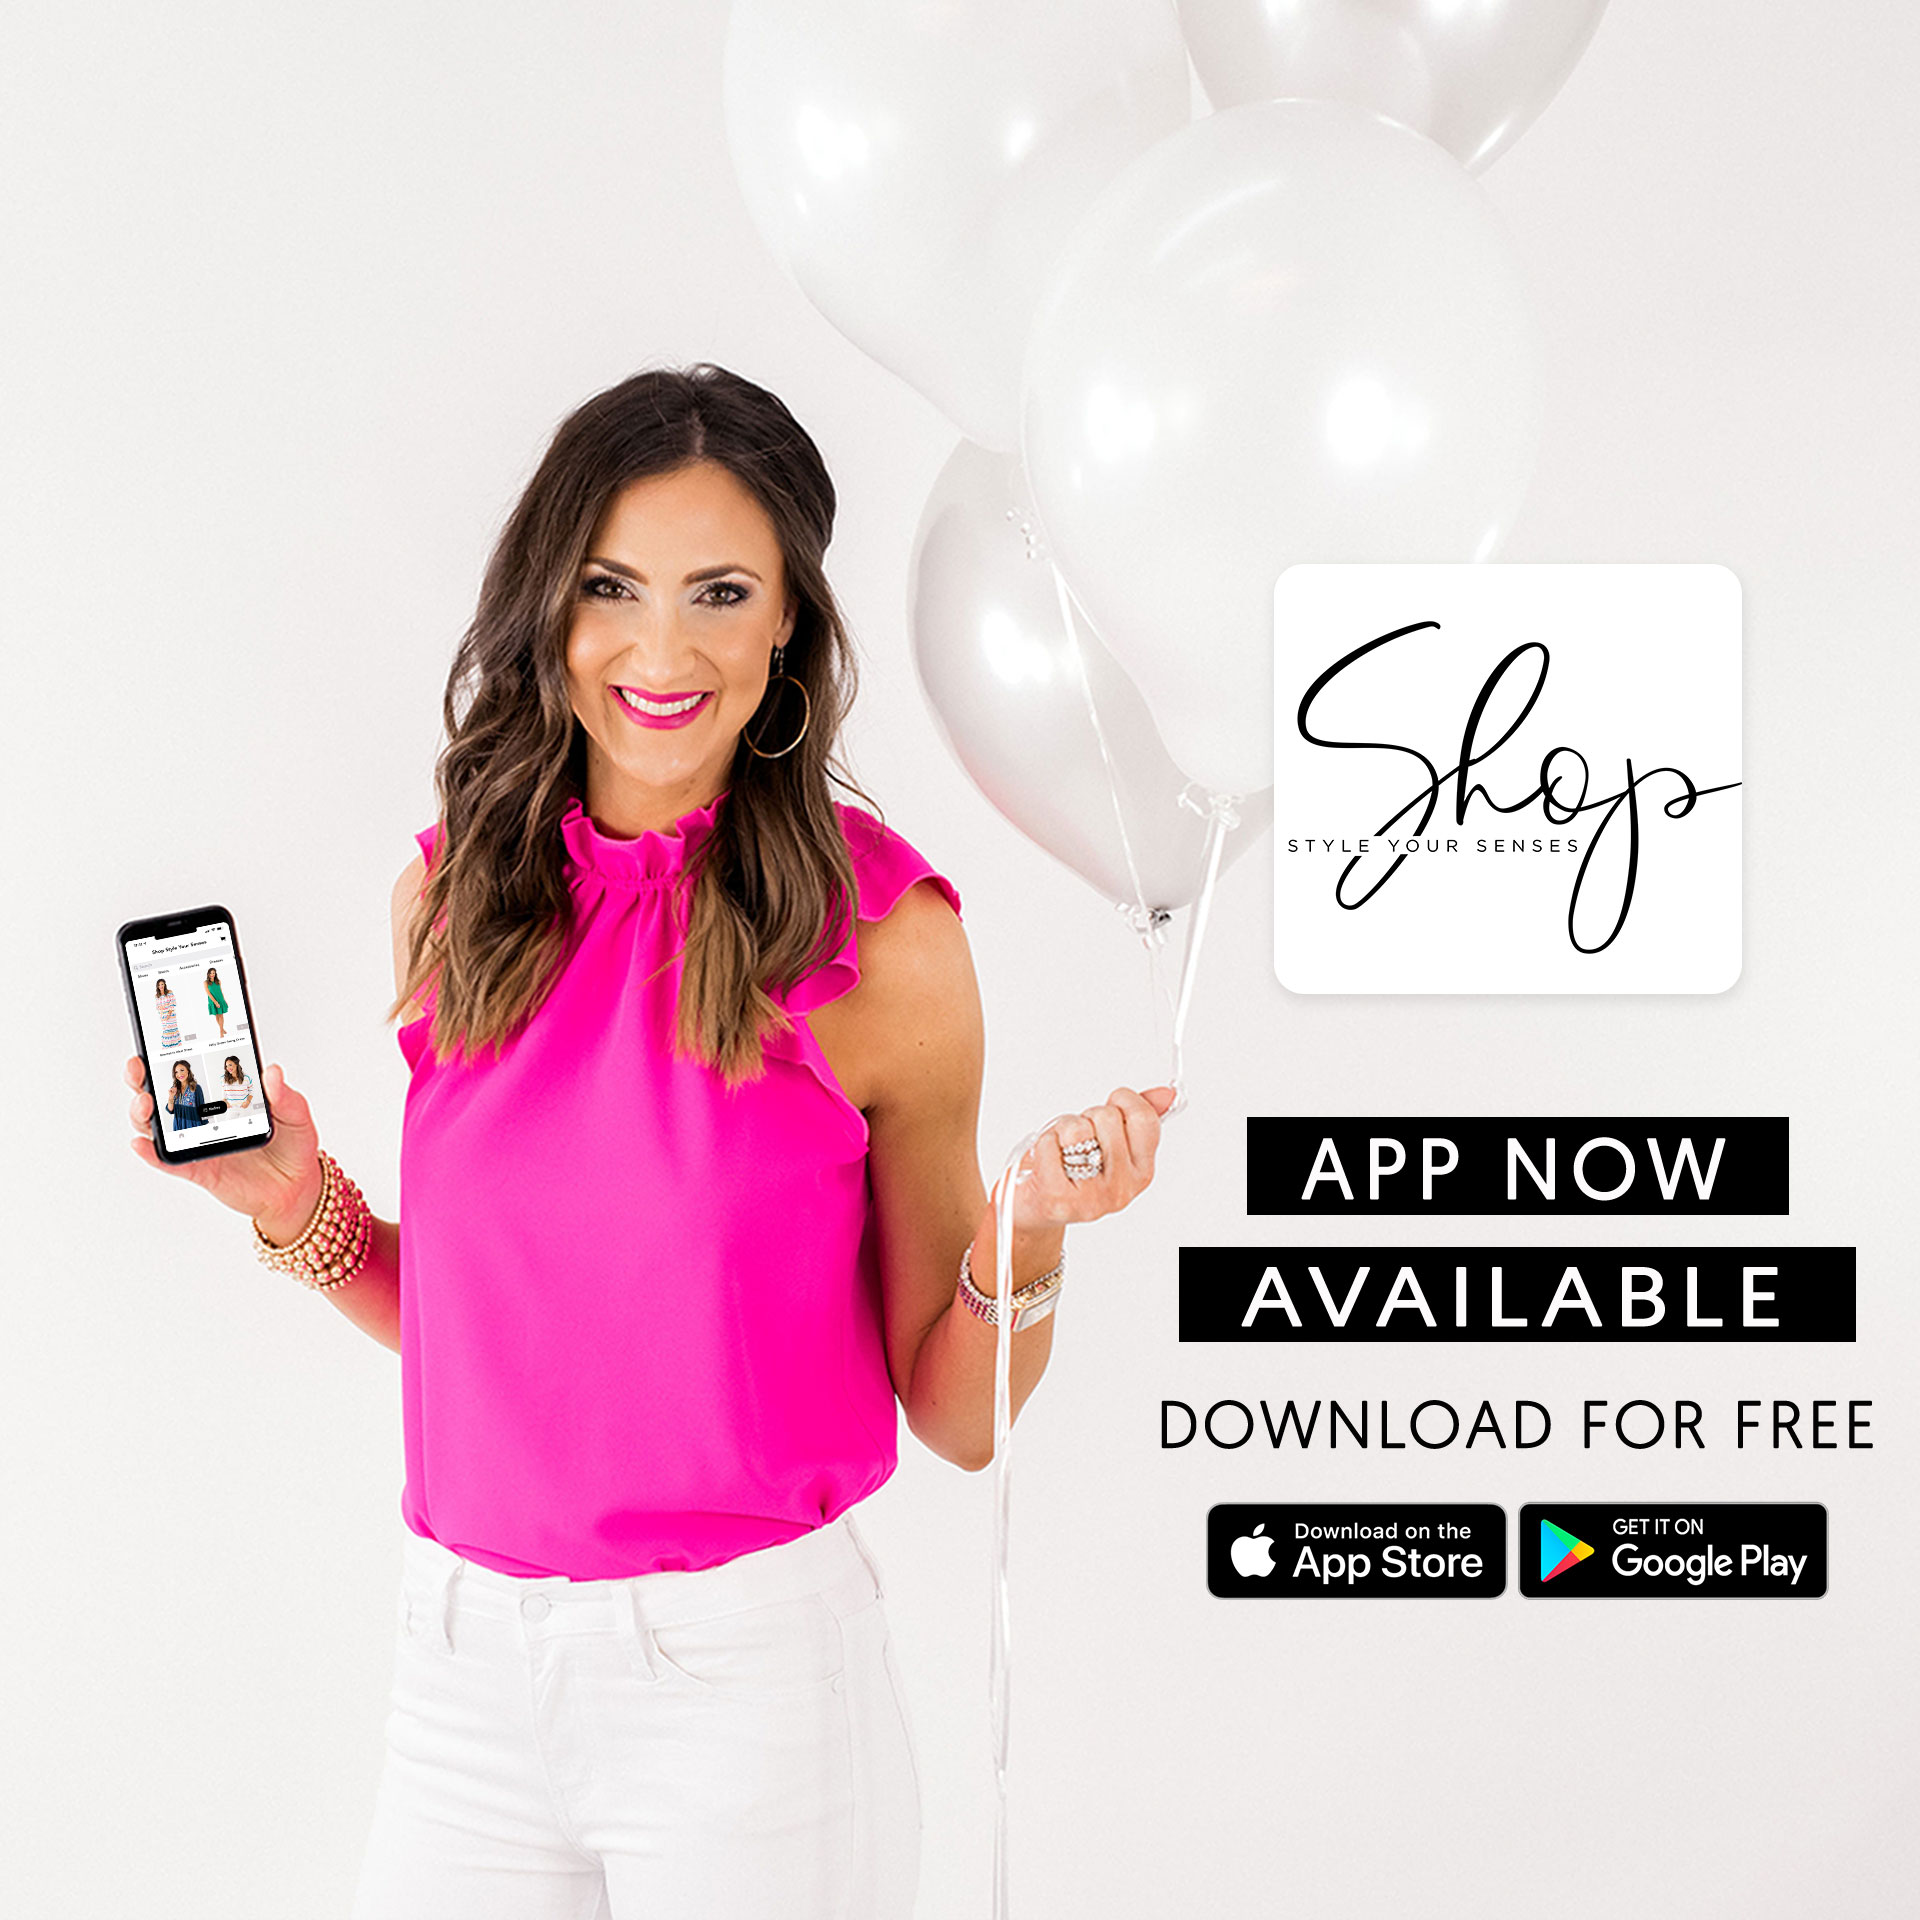 shop style your senses app